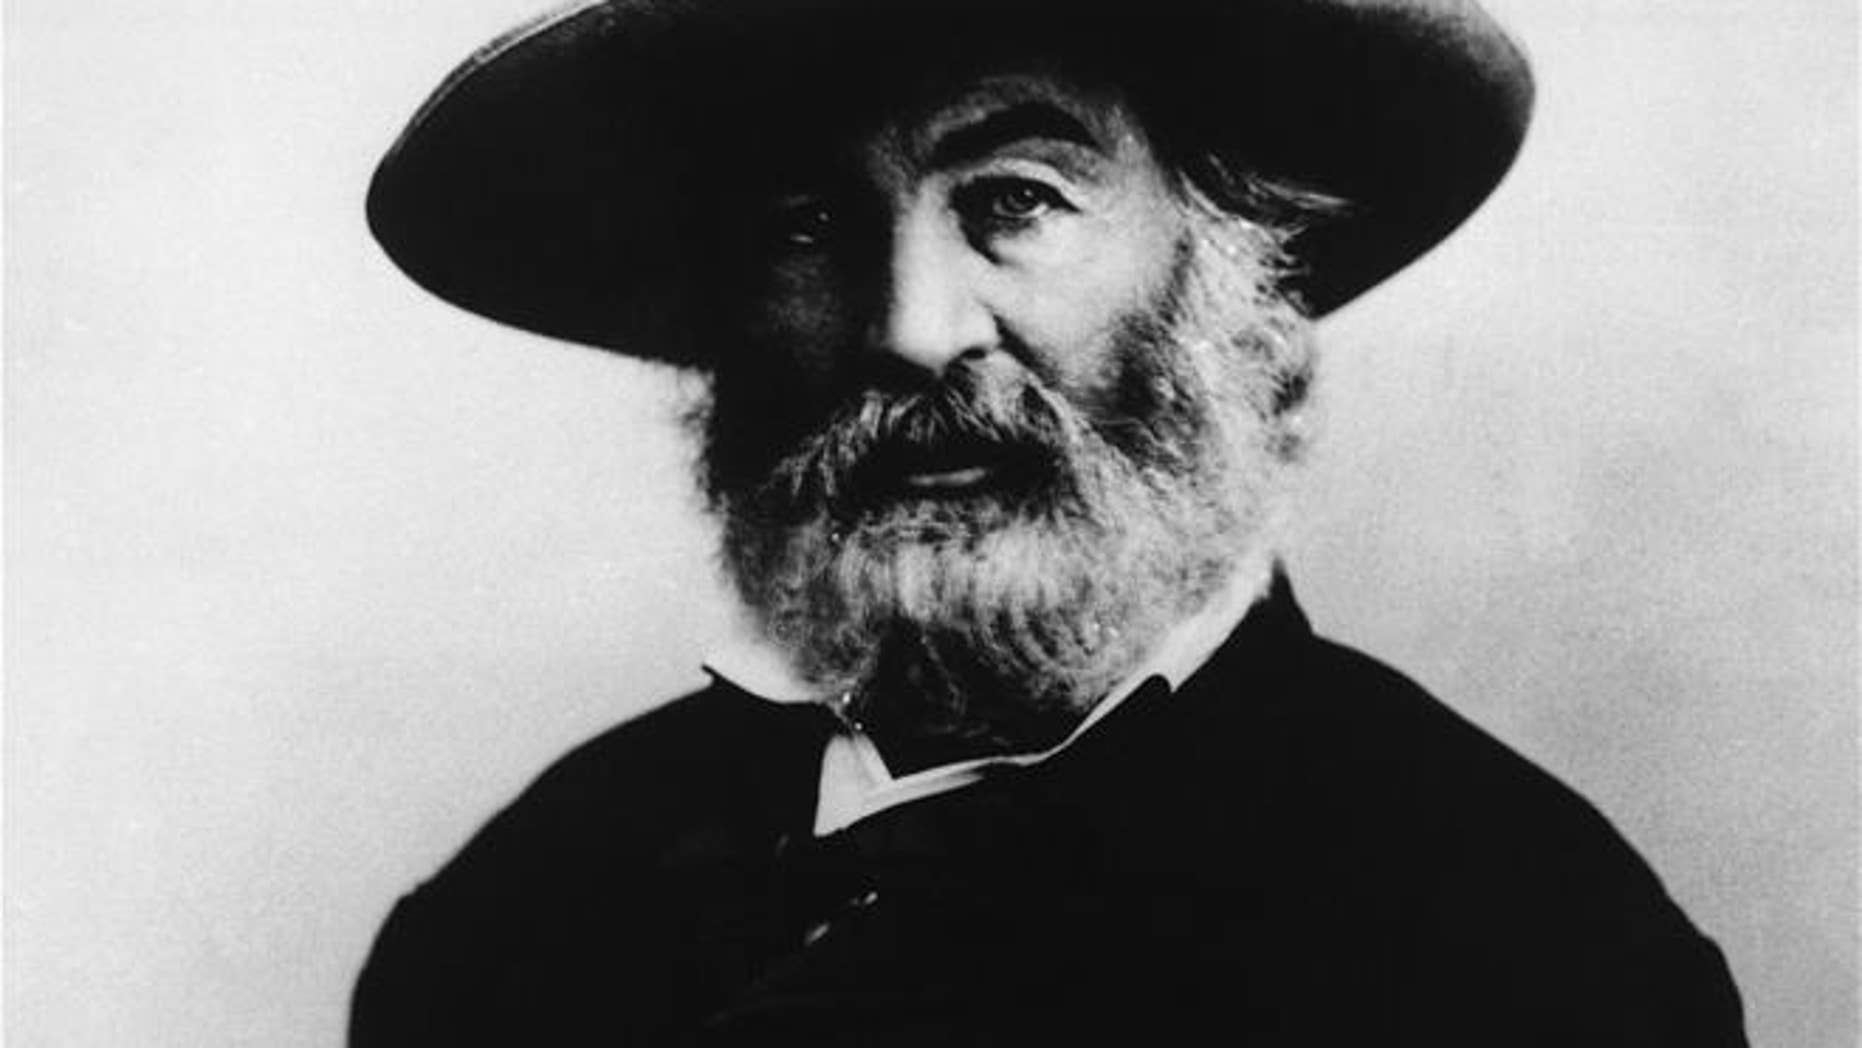 In this undated image, American writer Walt Whitman is seen.